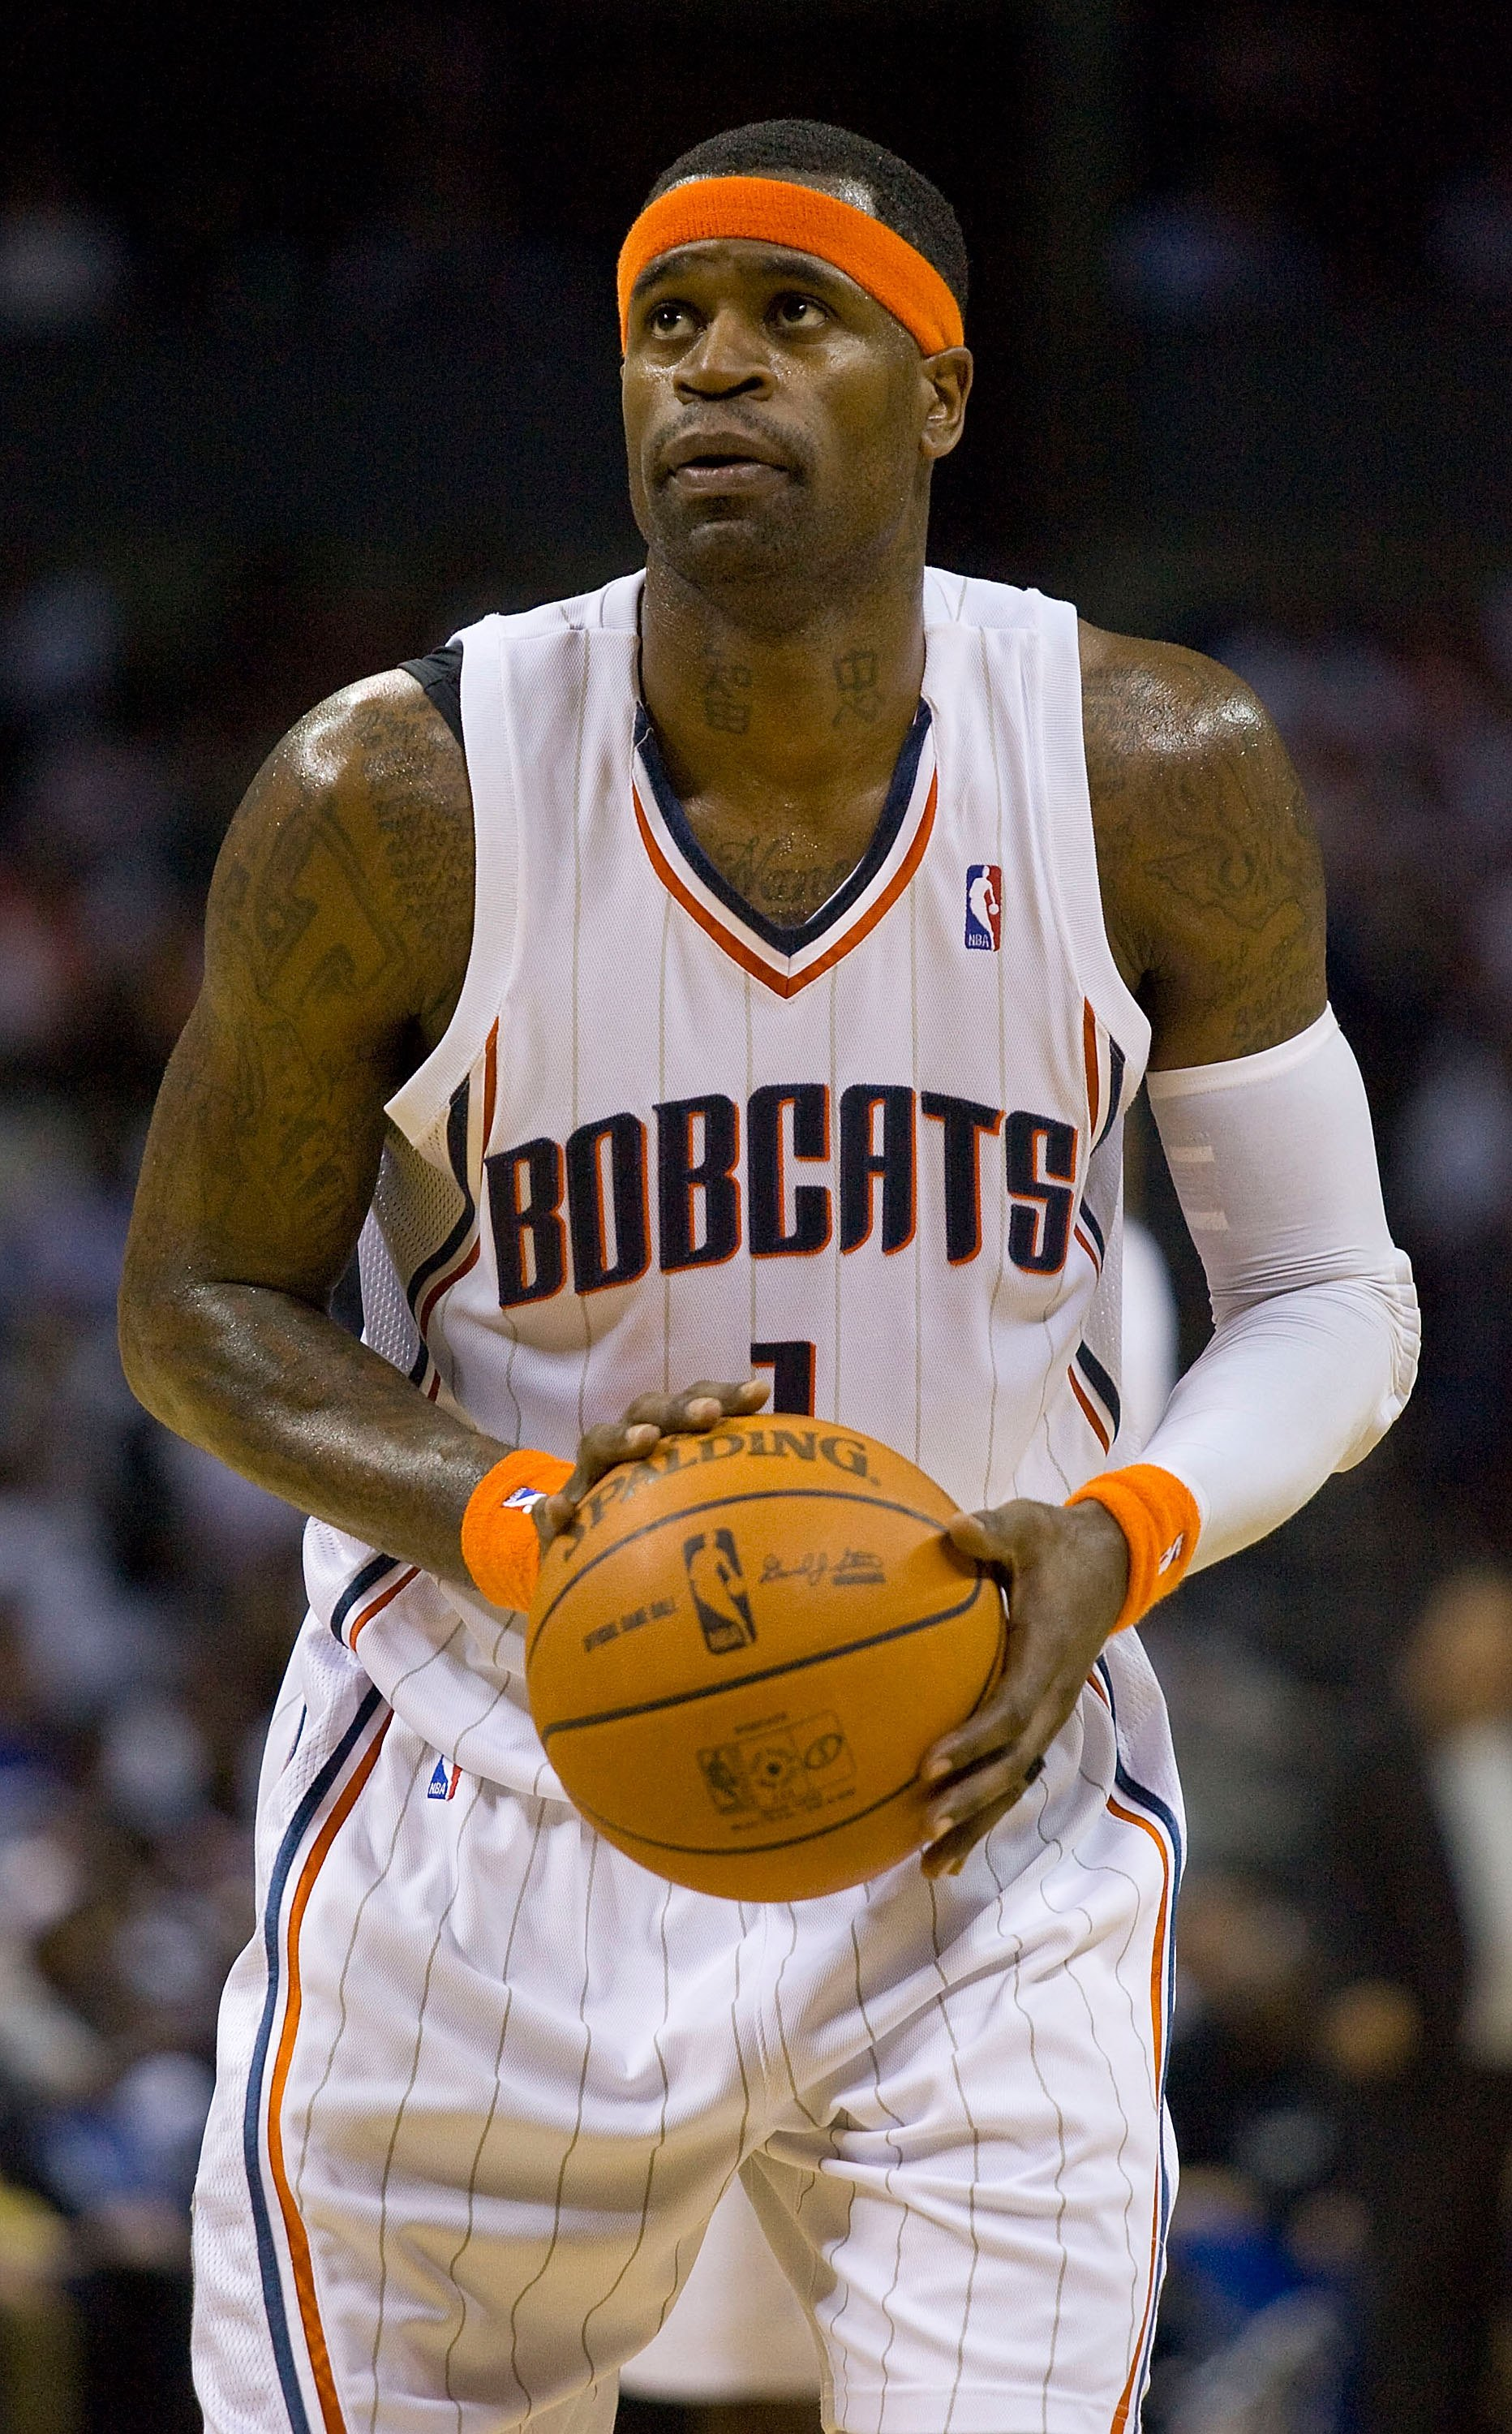 CHARLOTTE, NC - APRIL 26: Stephen Jackson #1 of the Charlotte Bobcats shoots a free throw against the Orlando Magic at Time Warner Cable Arena on April 26, 2010 in Charlotte, North Carolina.  The Magic defeated the Bobcats 99-90 to complete the four game